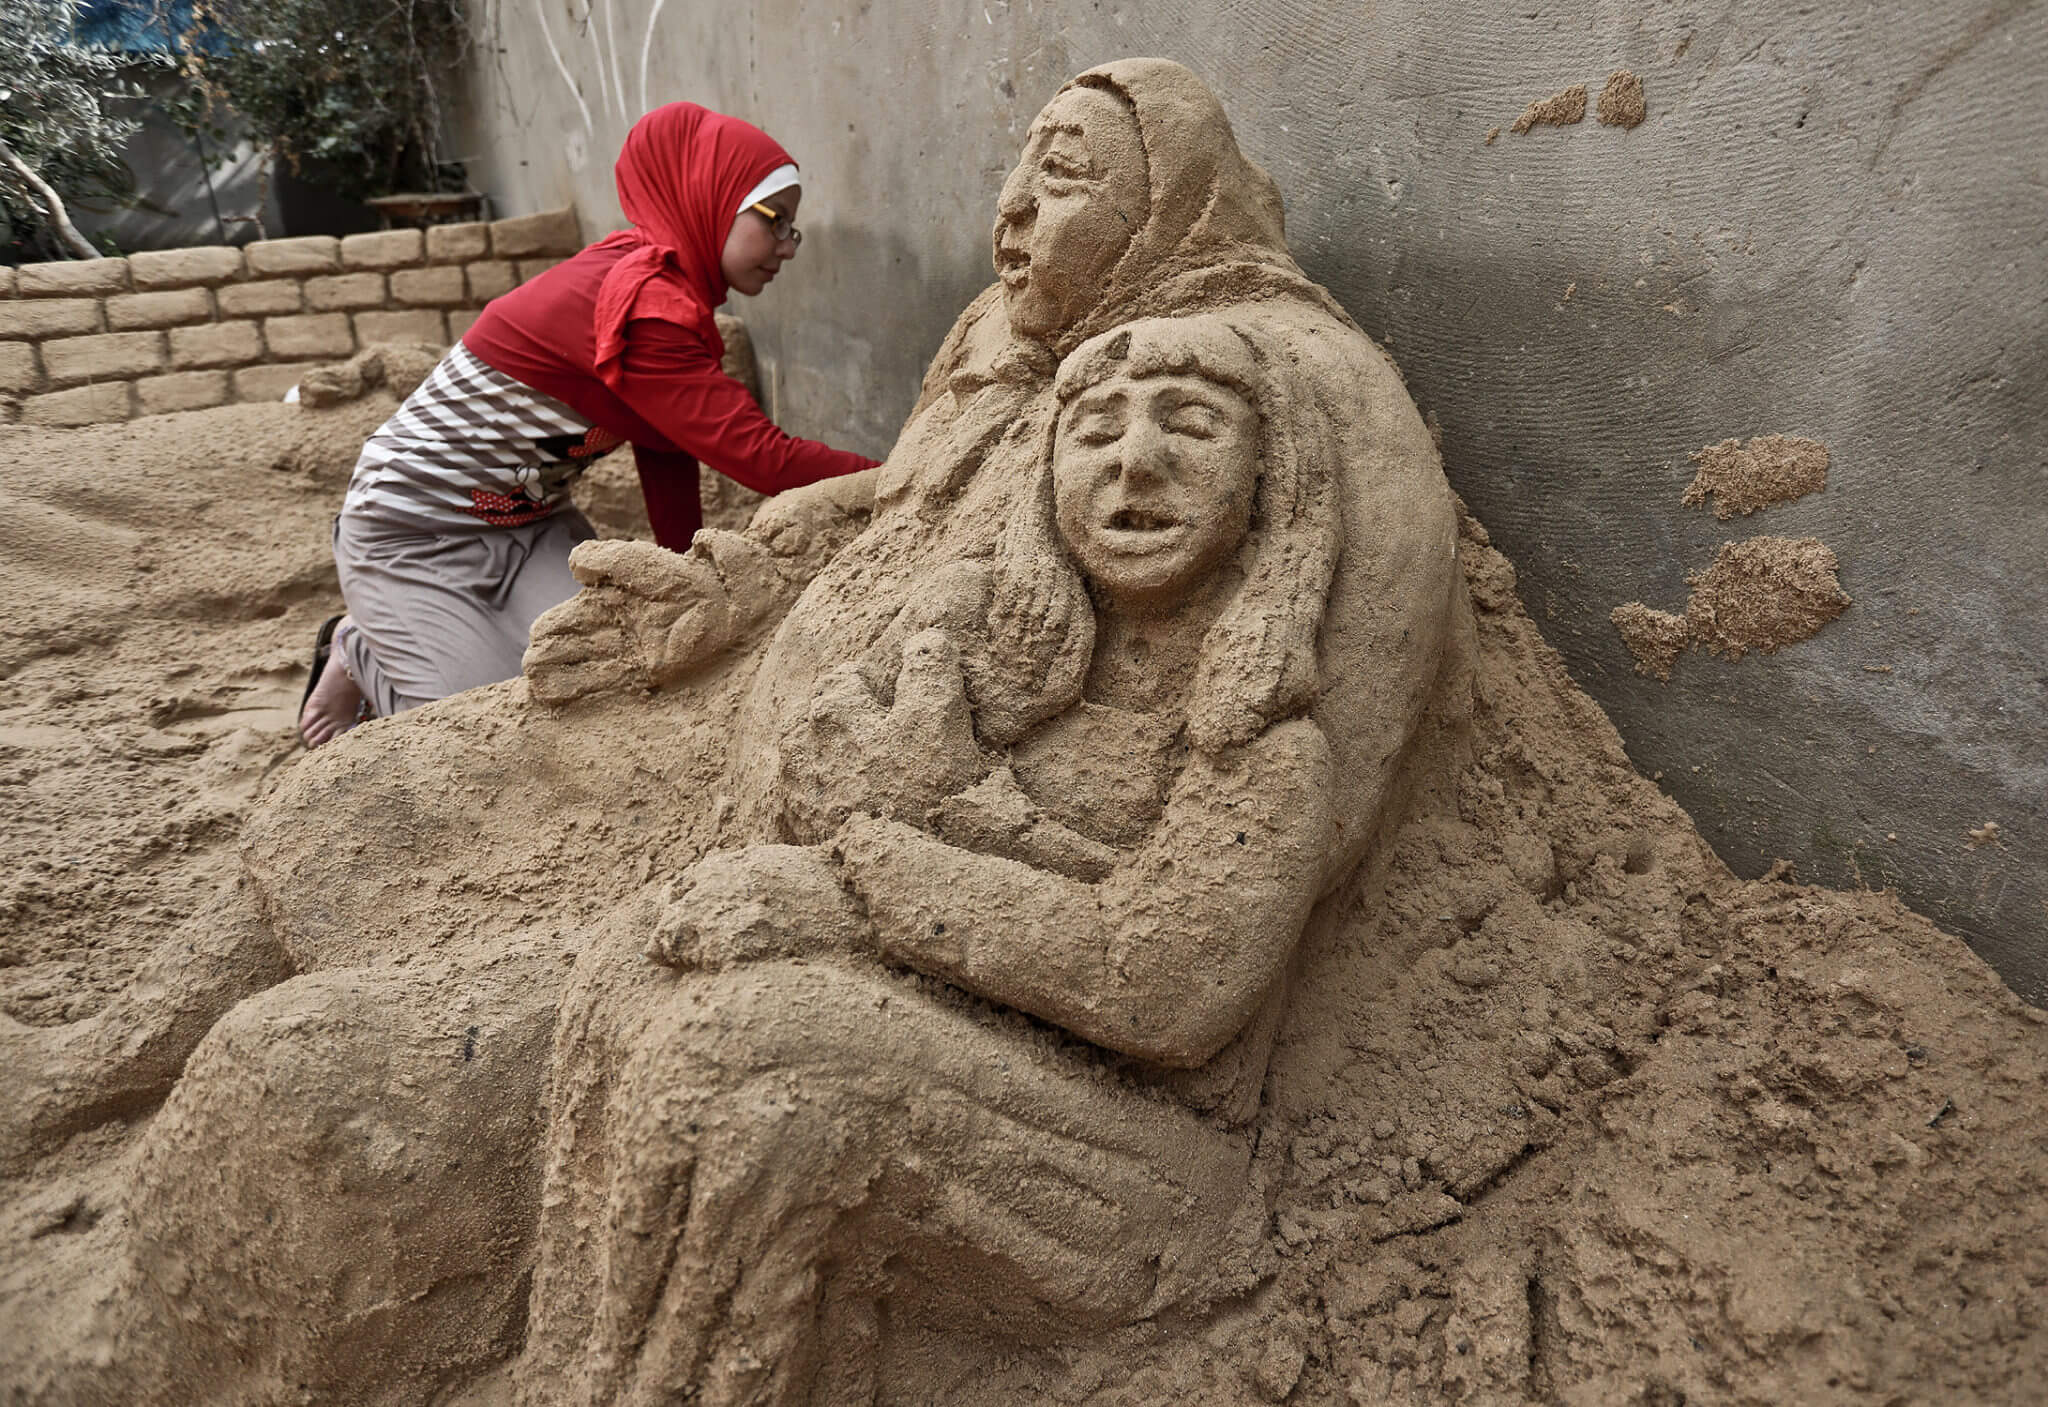 Rana Ramlawi, 20, practices sand sculpture by carving drawings of national symbols on the beach sand near her house